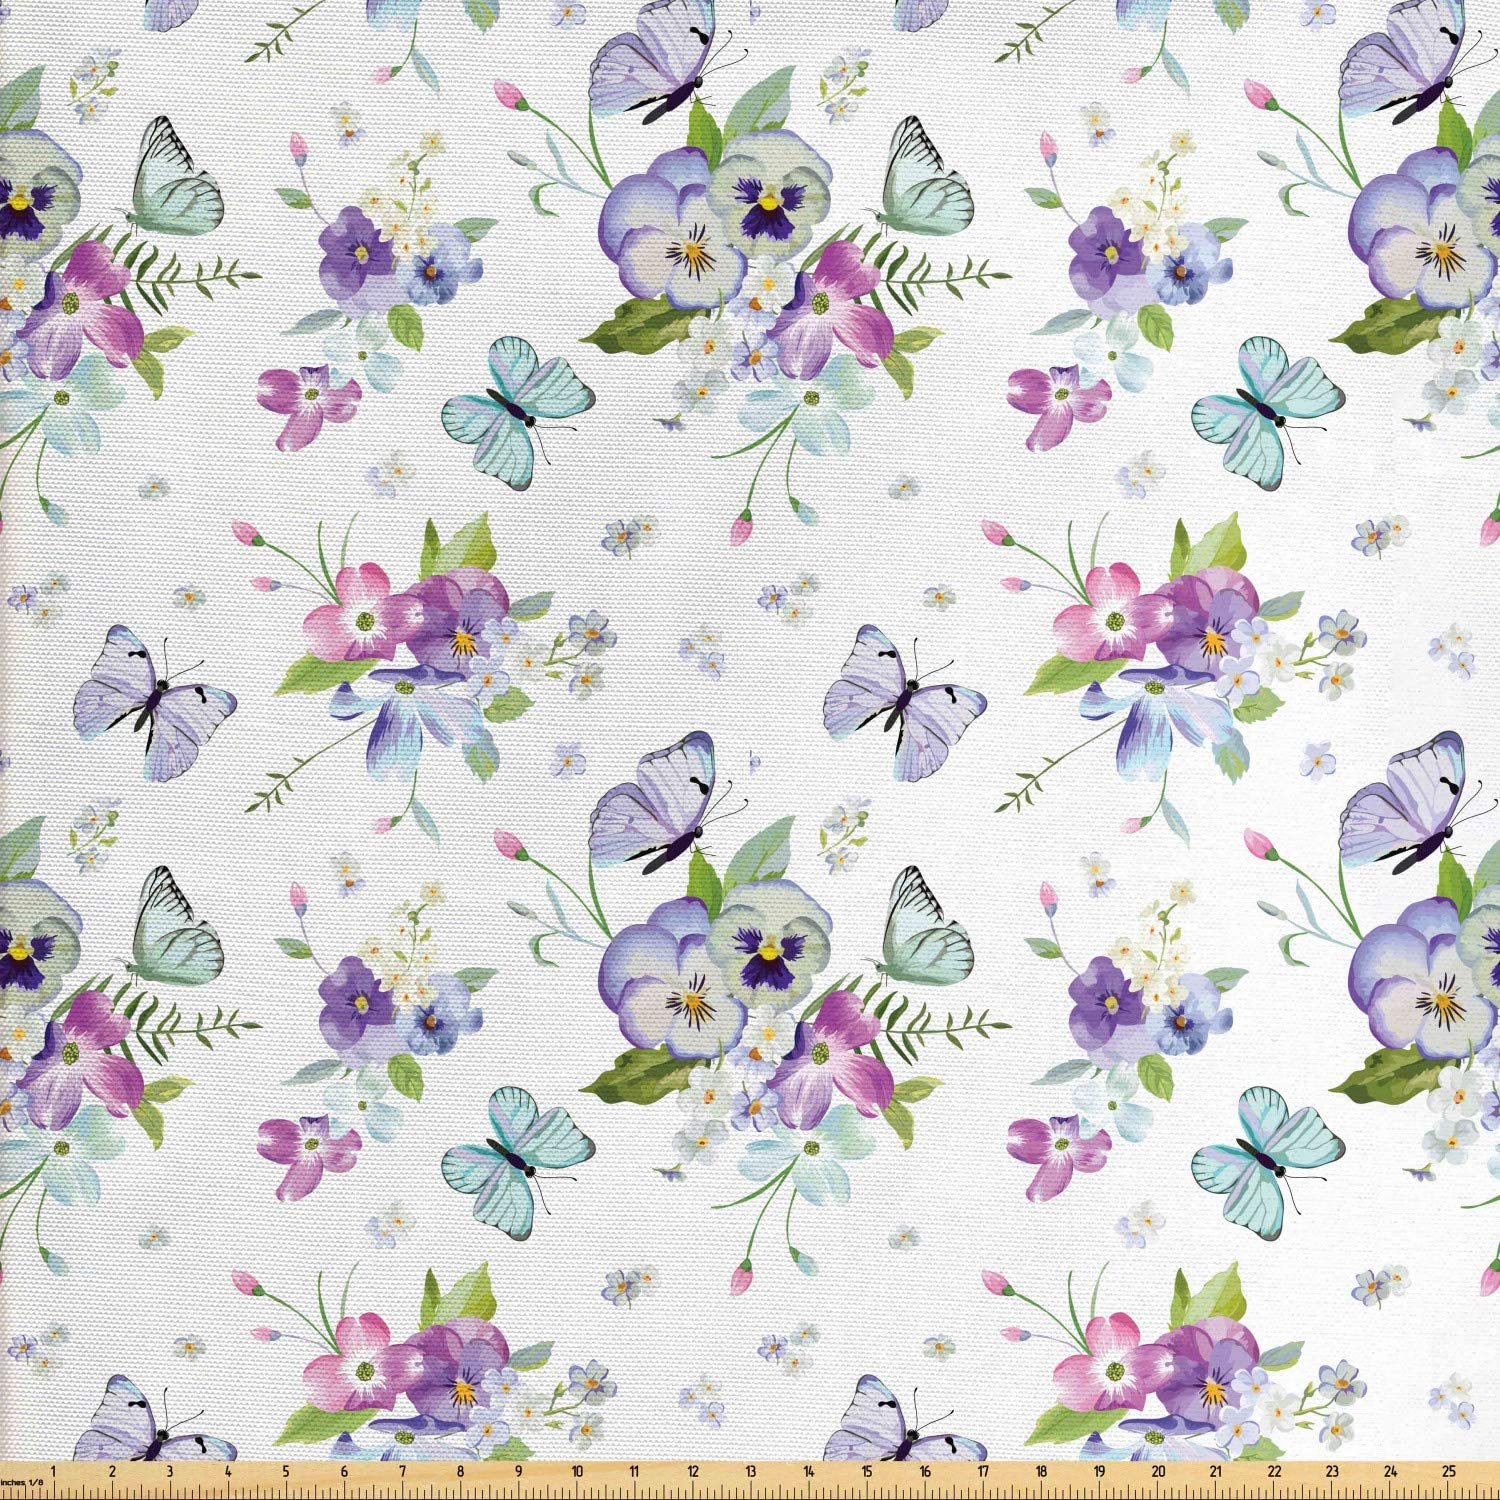 Lunarable Dogwood Flower Fabric by The Yard, Botanical Blooms with Spring Iris Peony Flying Butterflies Nature Theme, Decorative Fabric for Upholstery and Home Accents, 2 Yards, Lavender Purple